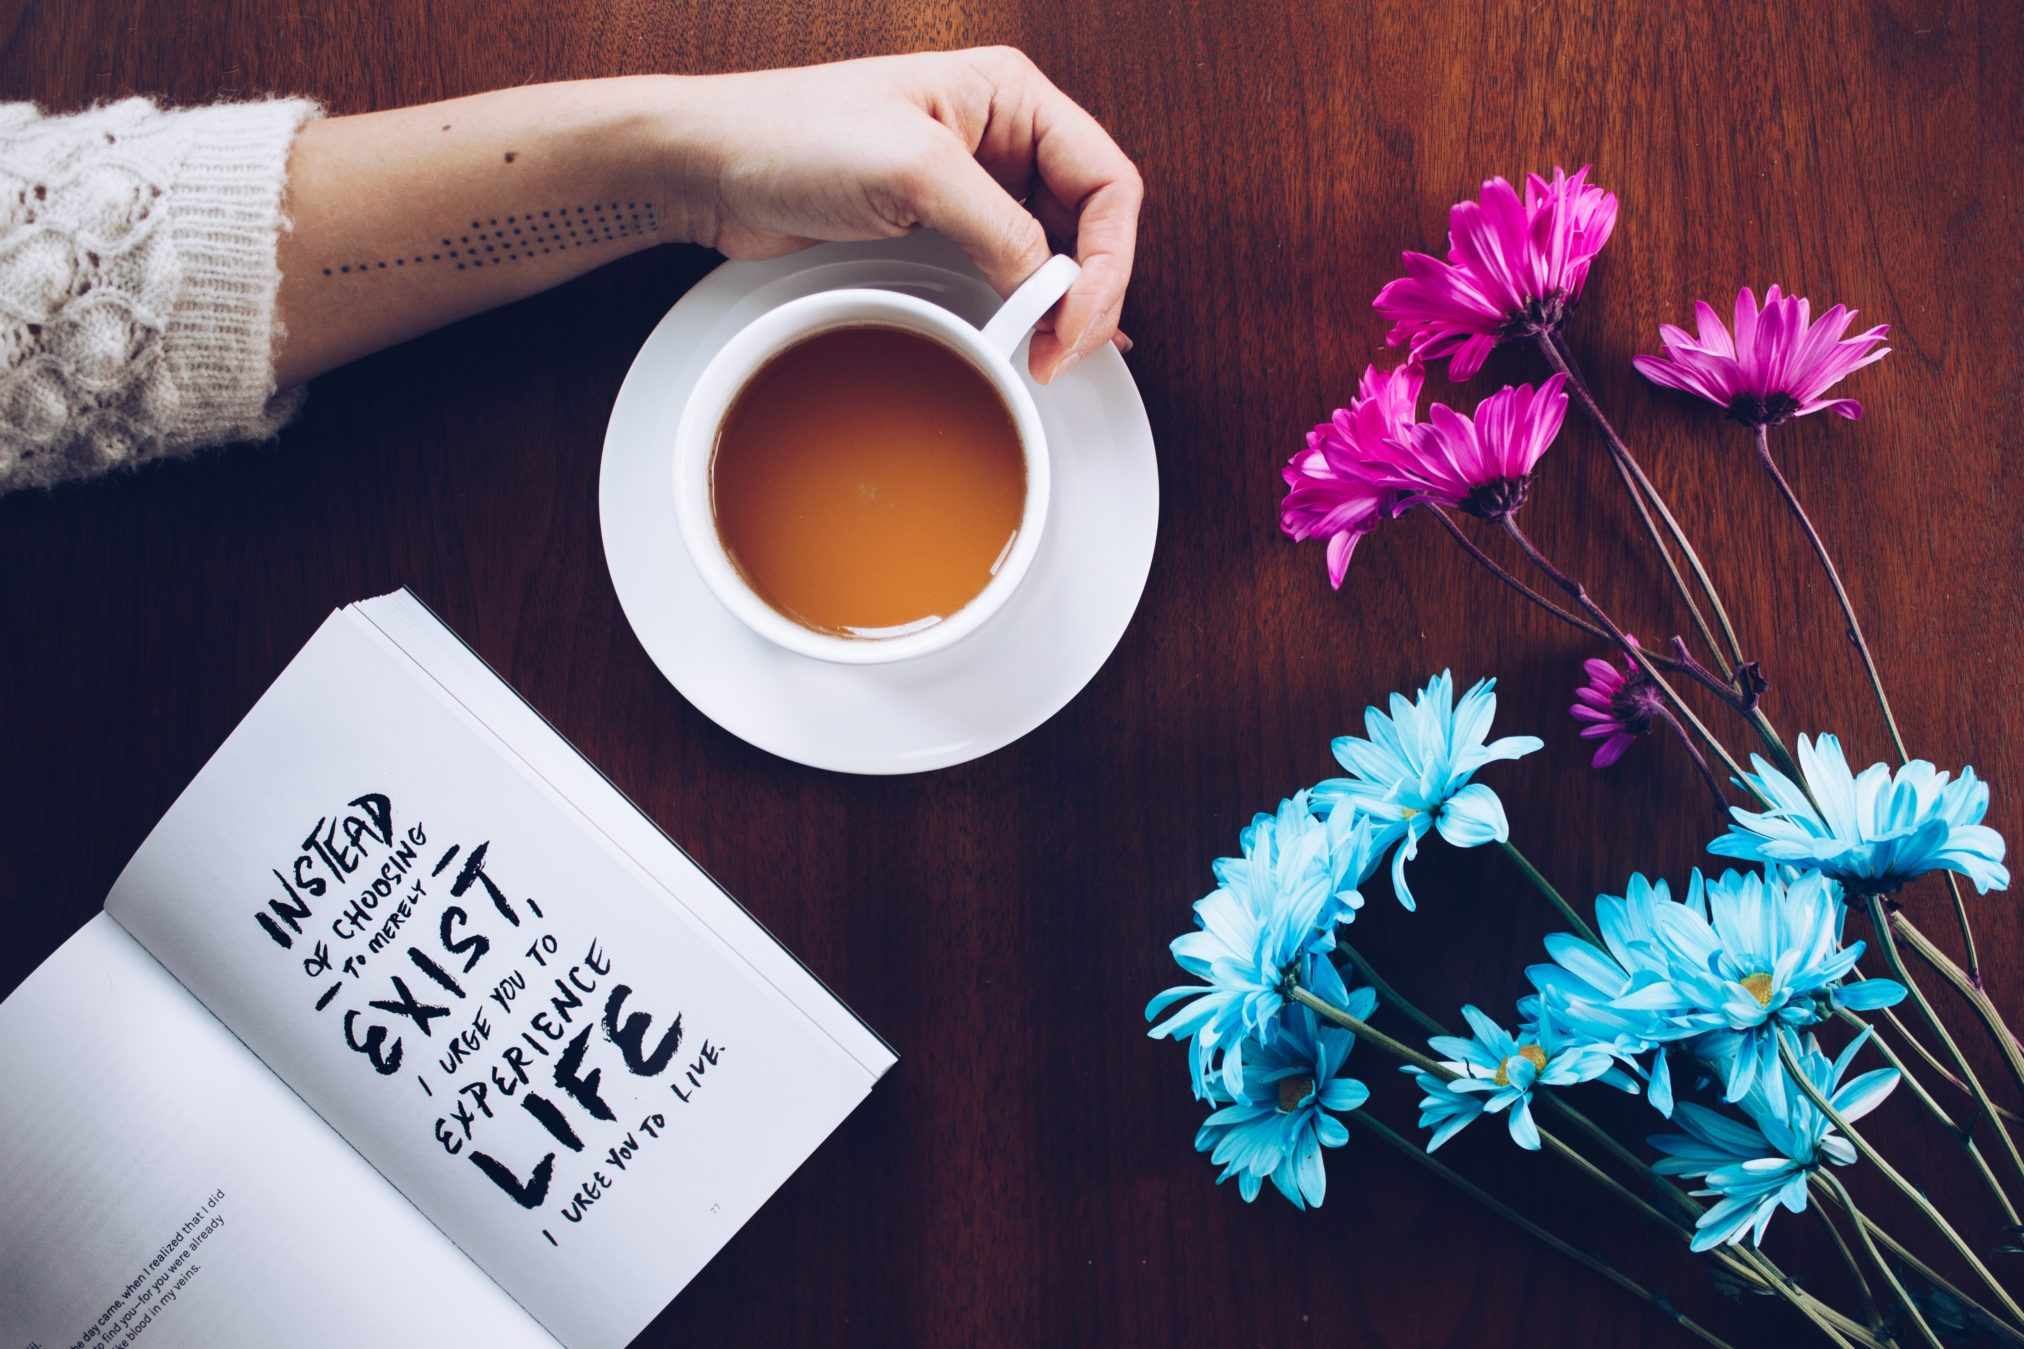 6 Best Books to Read Now to Improve Your Self-Care